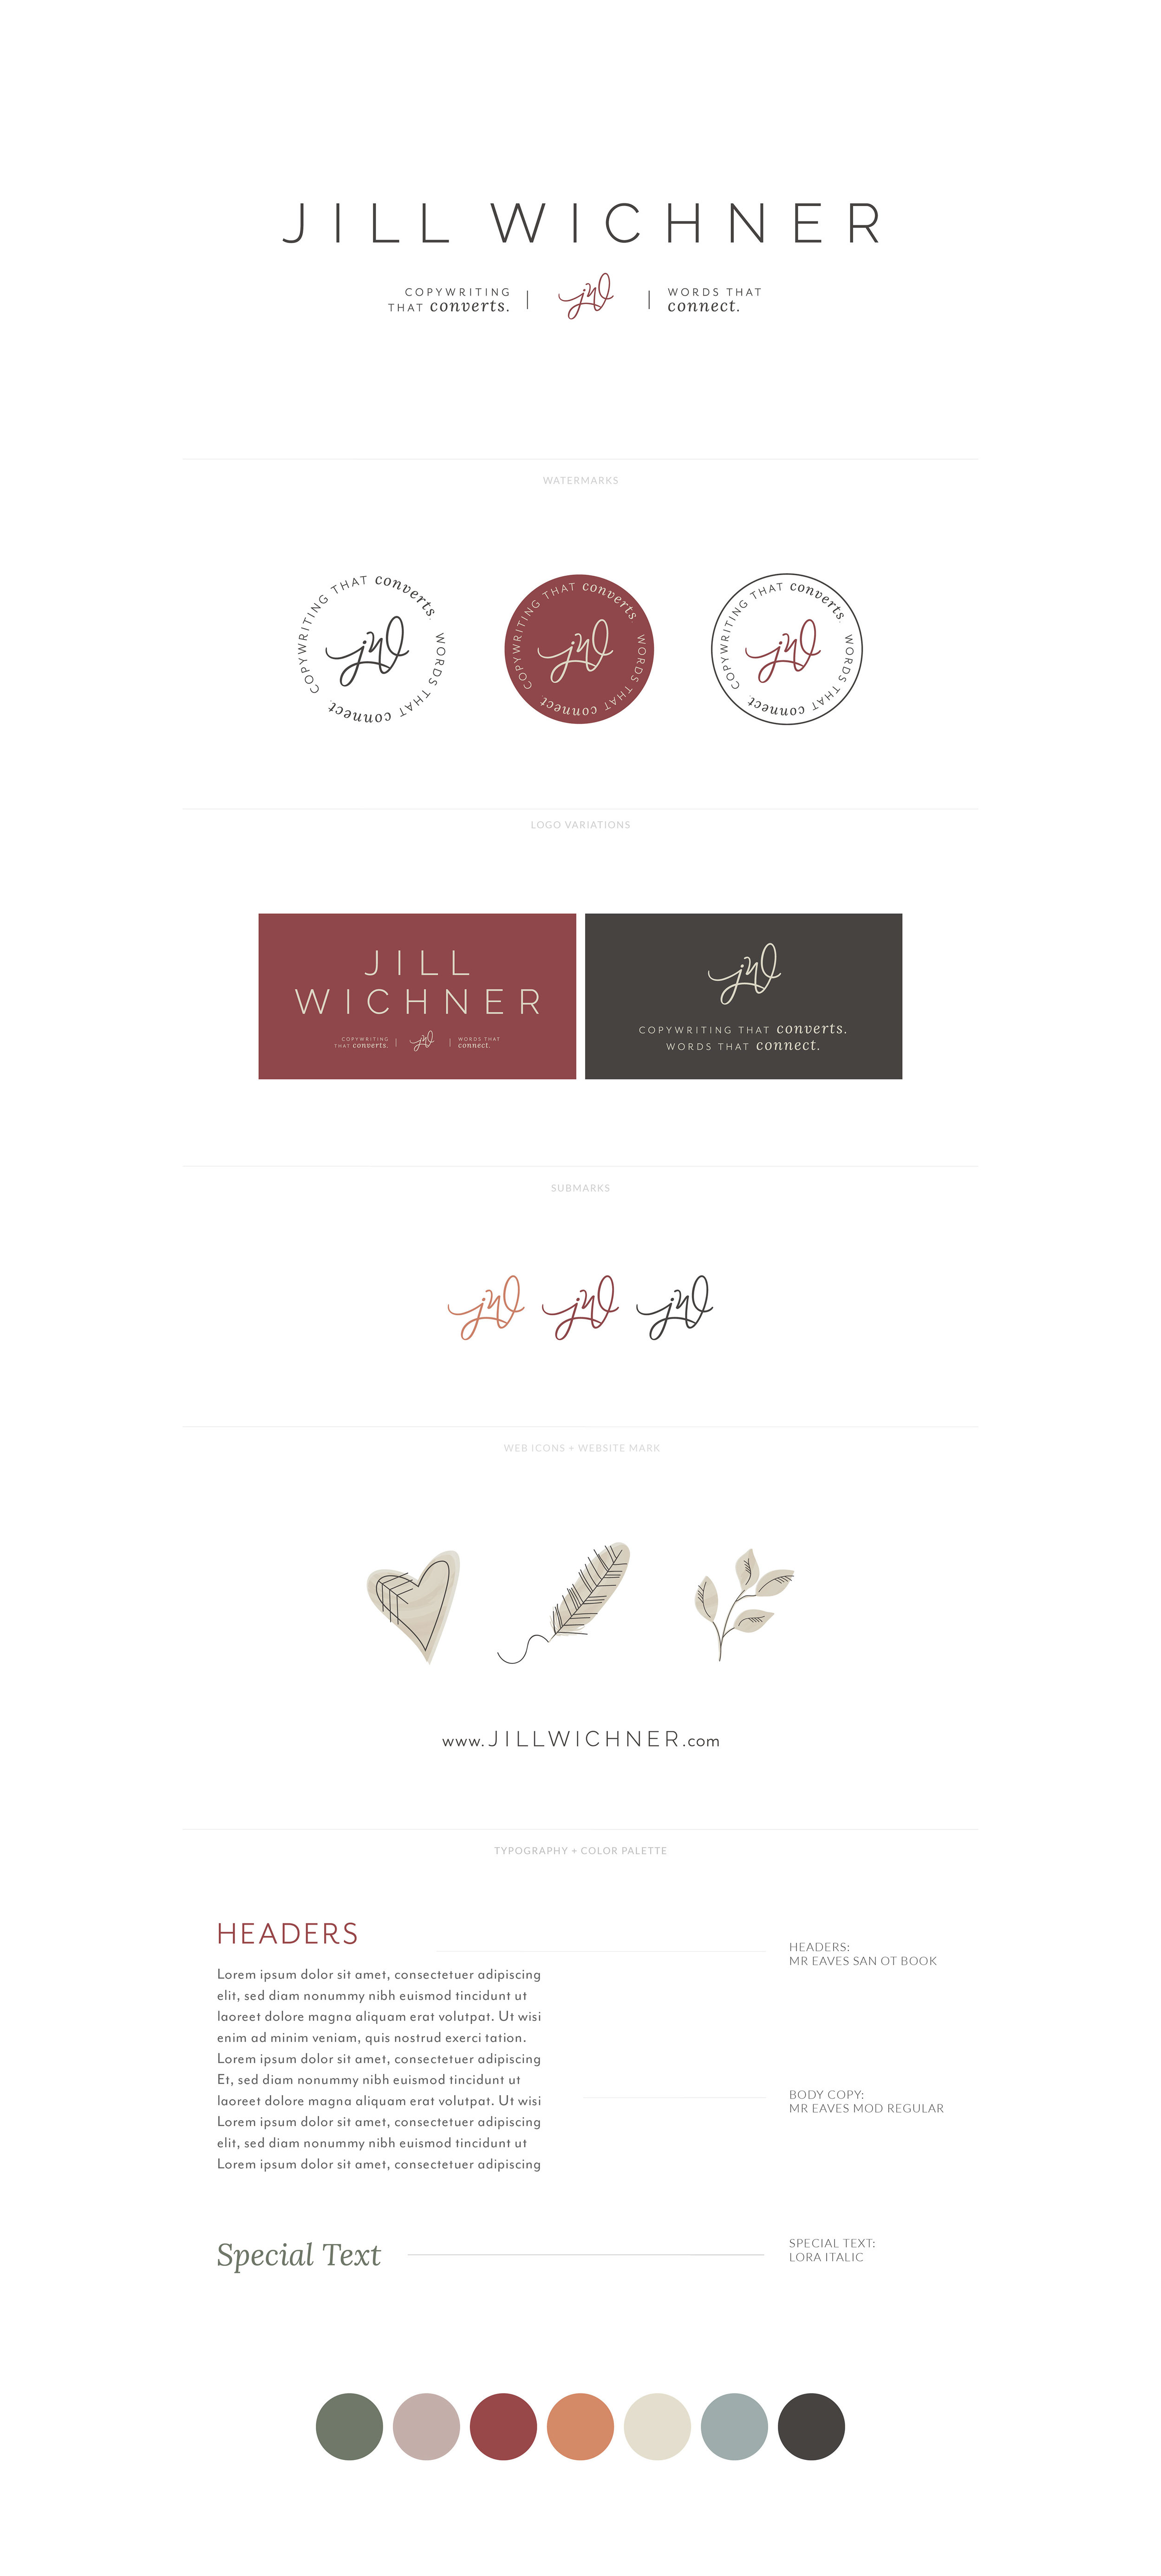 Jill Wichner, Copywriter and Content Creator | Minimalistic and Classic Watermark, Submark, Illustrations, Typography Font Styling, Color Palette | Branding by AllieMarie Design